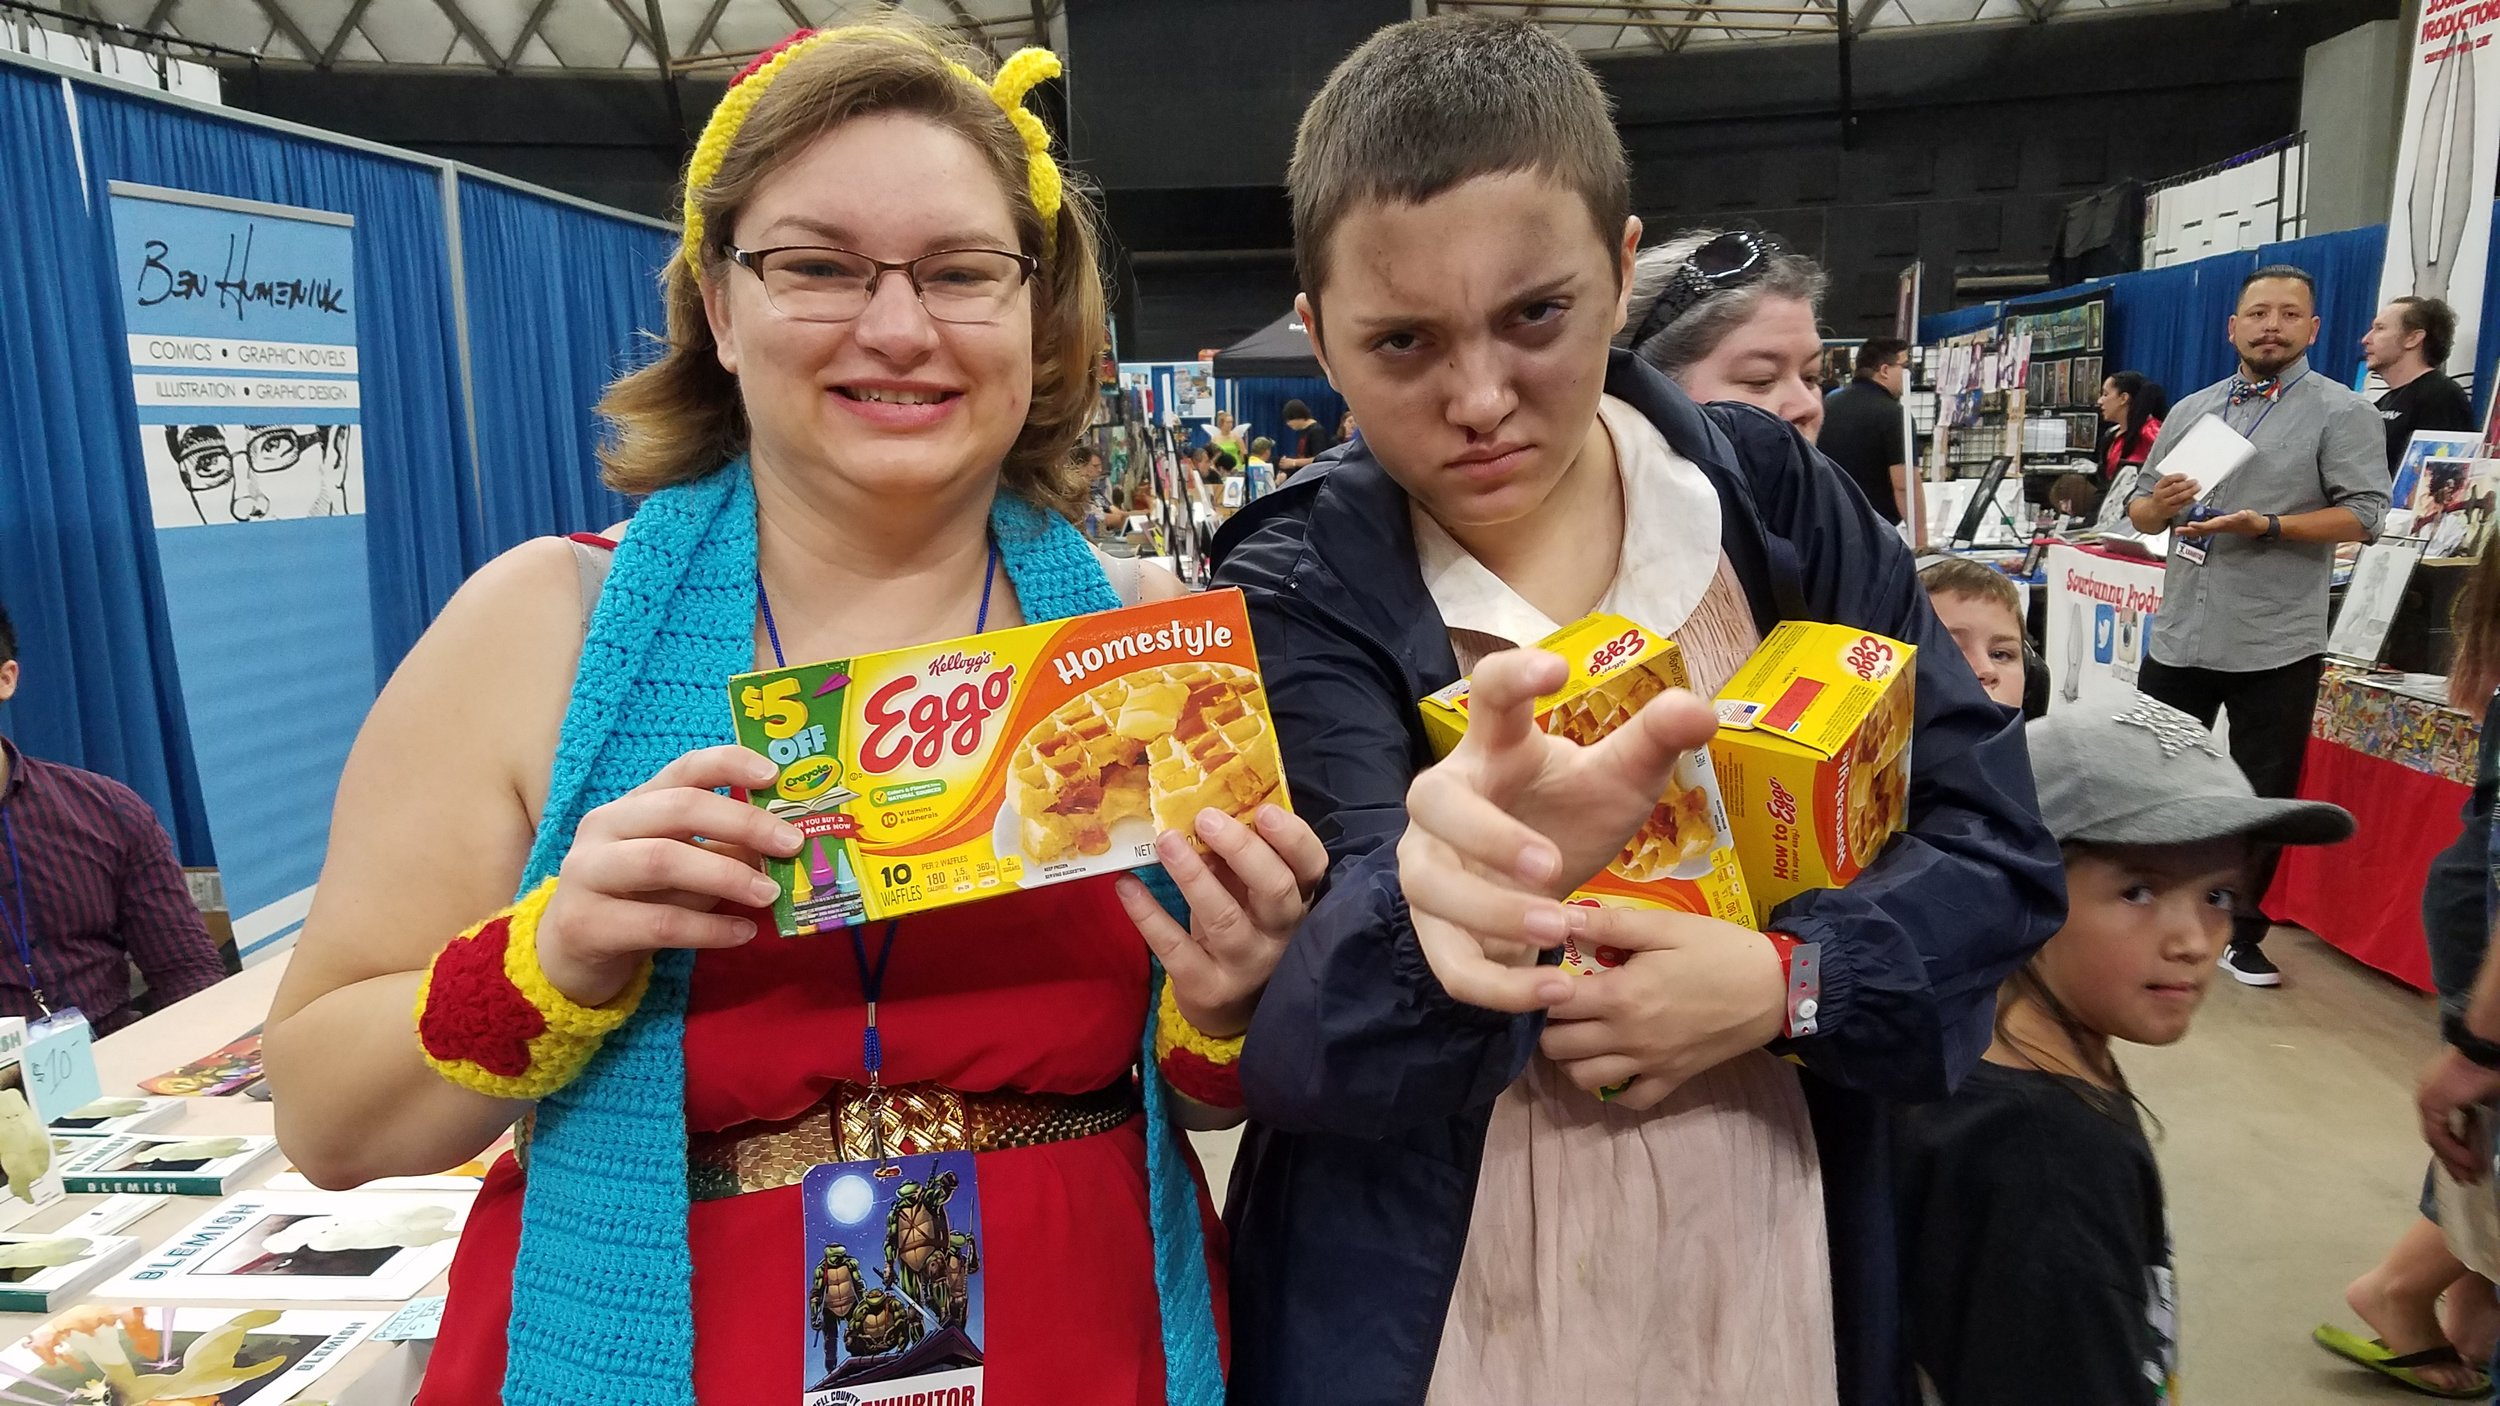 Eleven from Stranger things.  Back story: I actually had binge watched this series while crocheting to get ready for this Convention.  So I recognized her from down the end of the row.